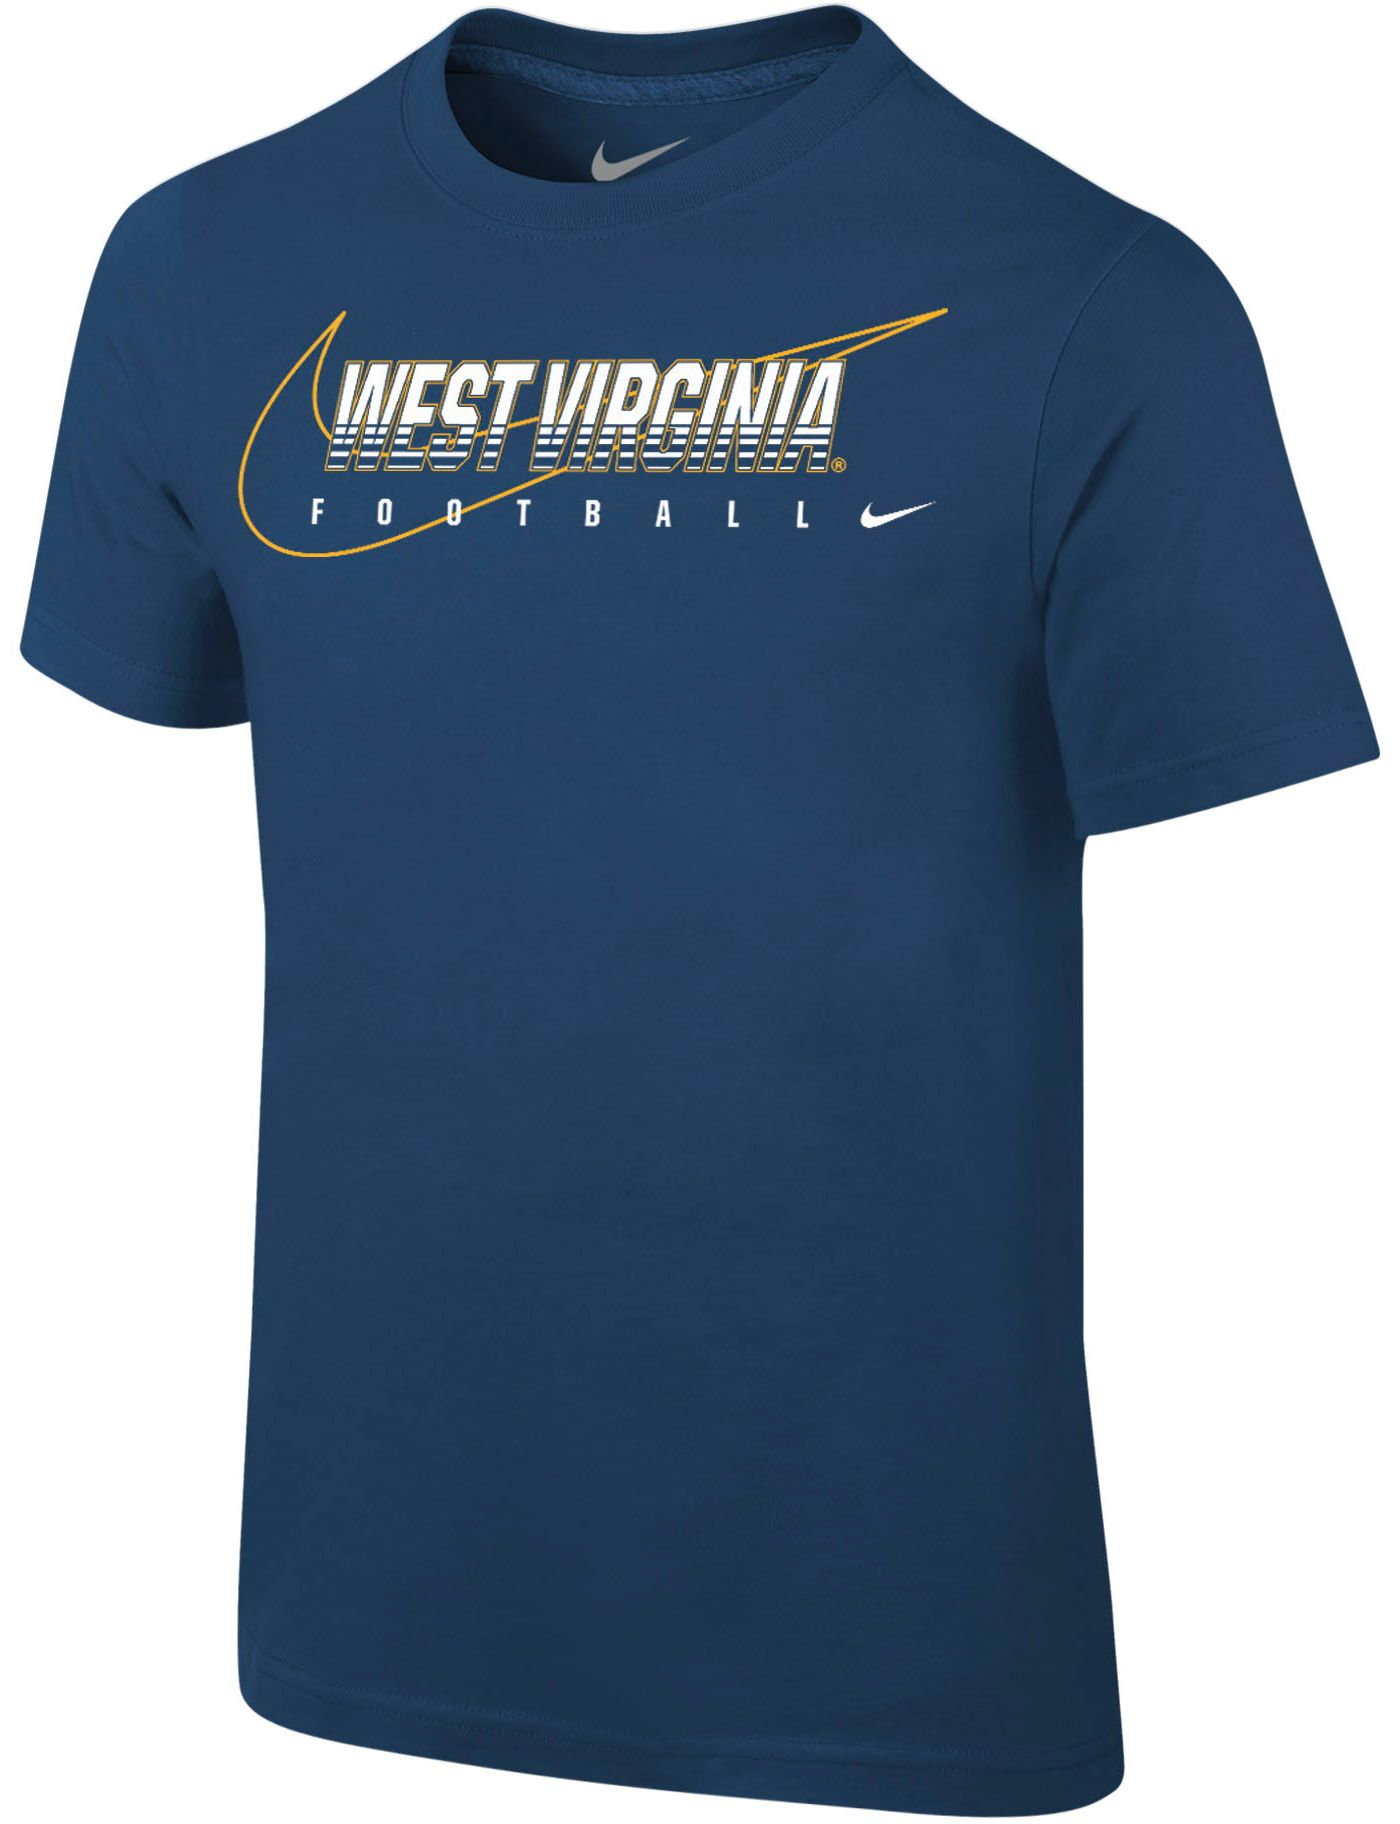 Nike Youth West Virginia Mountaineers Blue Football Dri-FIT Cotton Preschool Facility T-Shirt